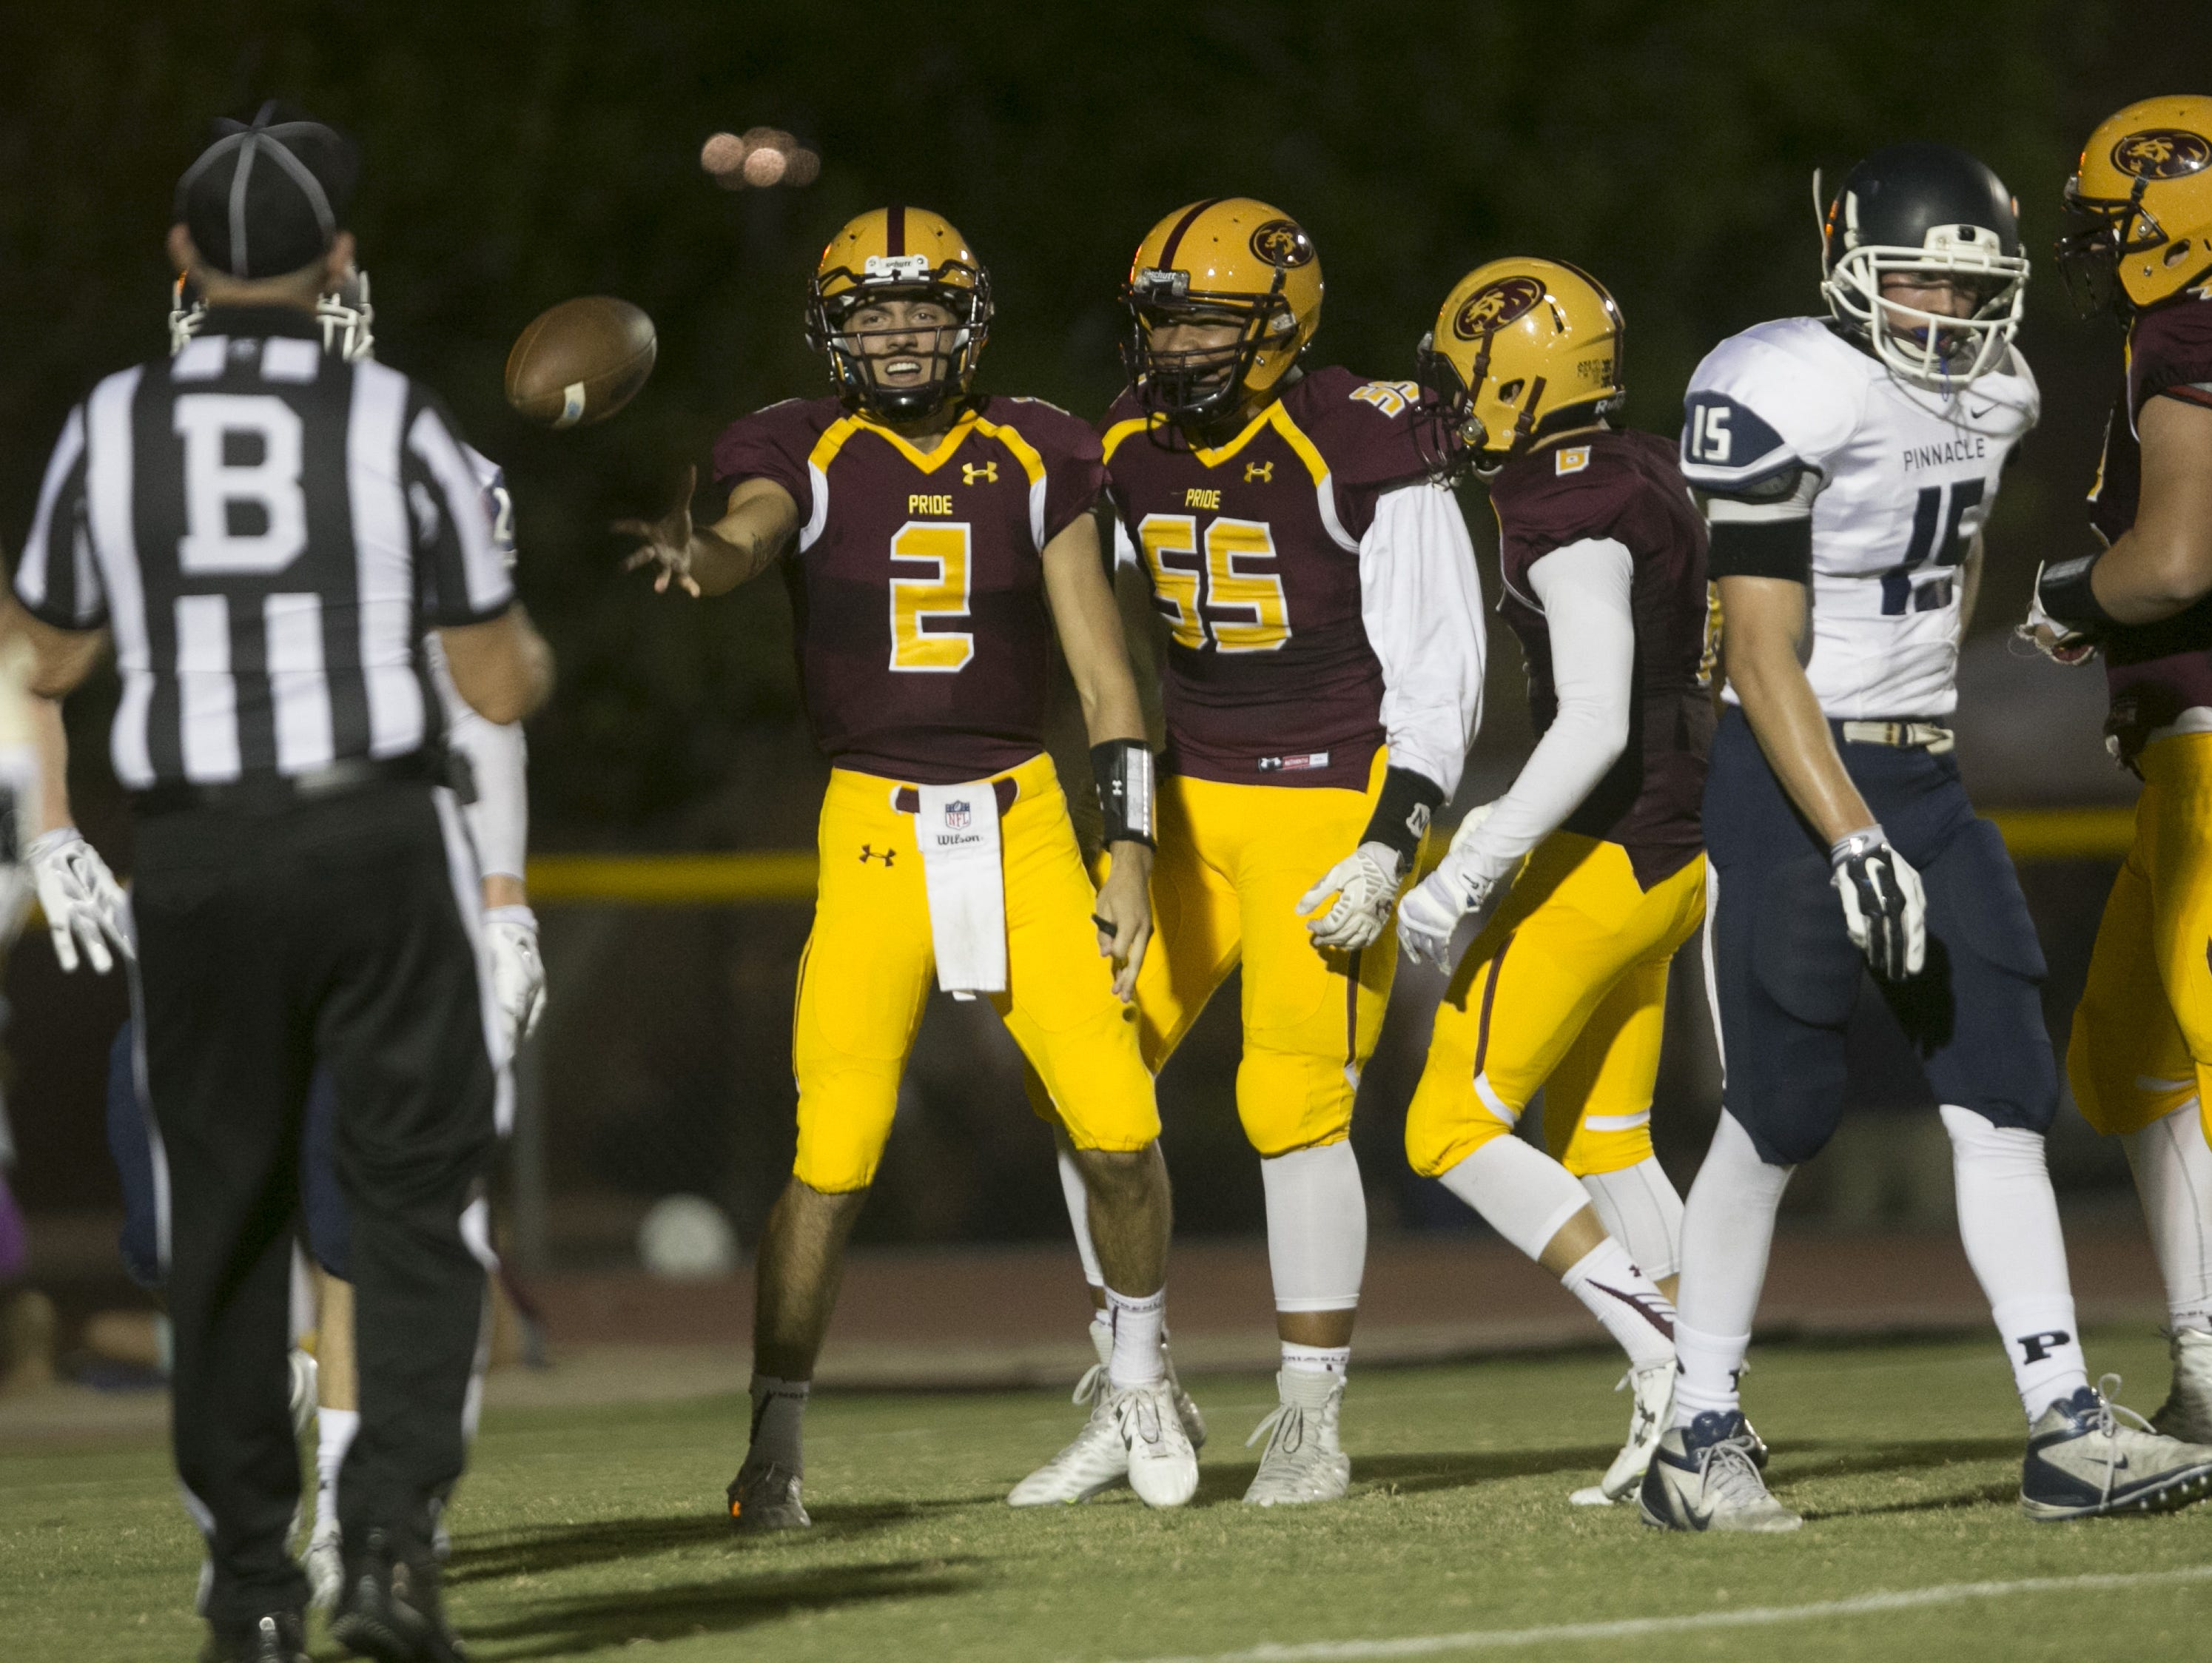 Mountain Pointe's Jack Smith tosses the ball to the referee after scoring a running TD against Pinnacle at Mountain Pointe High School in Phoenix, AZ on September 25, 2015.